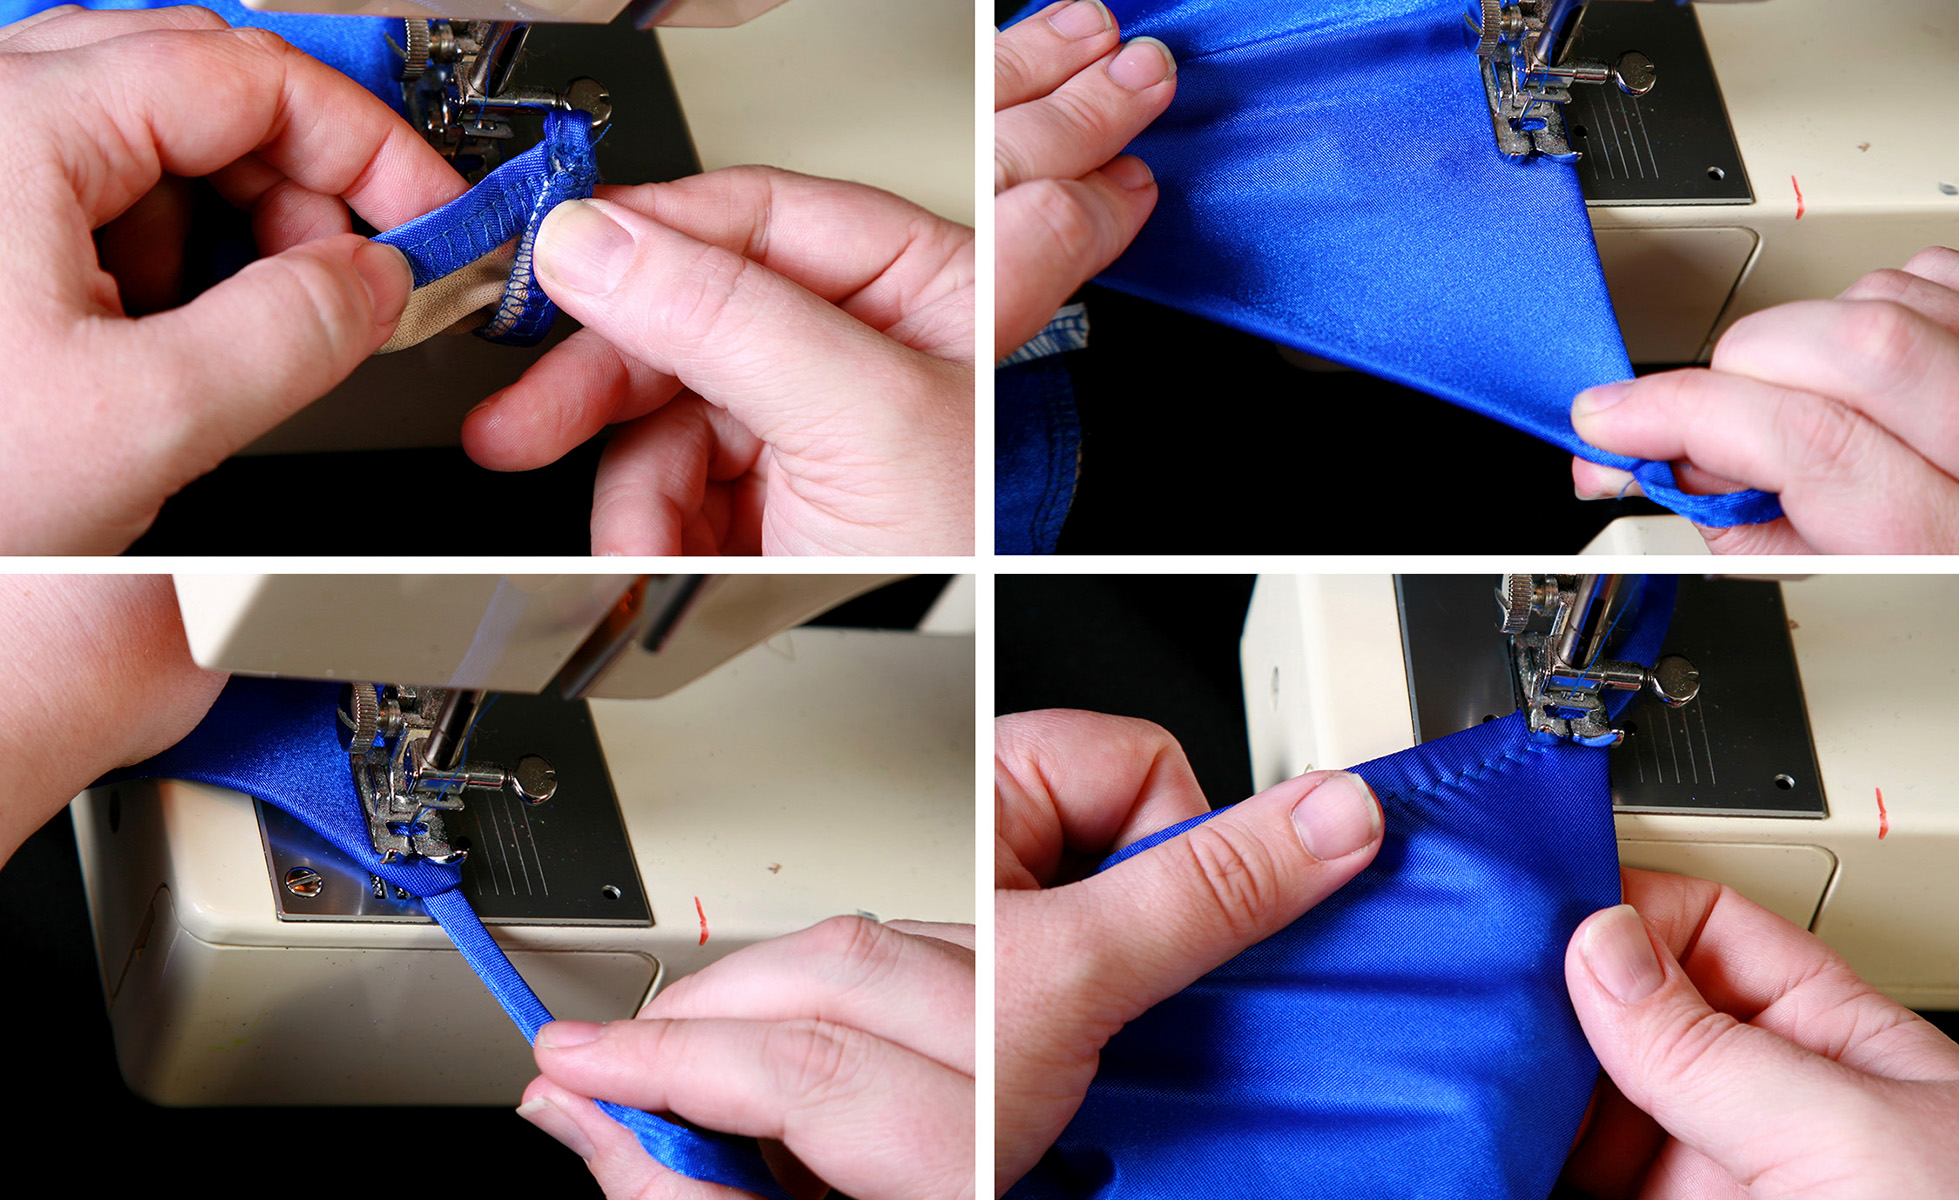 A four part image showing the elastic being folded over and stitched down, as described in the post.